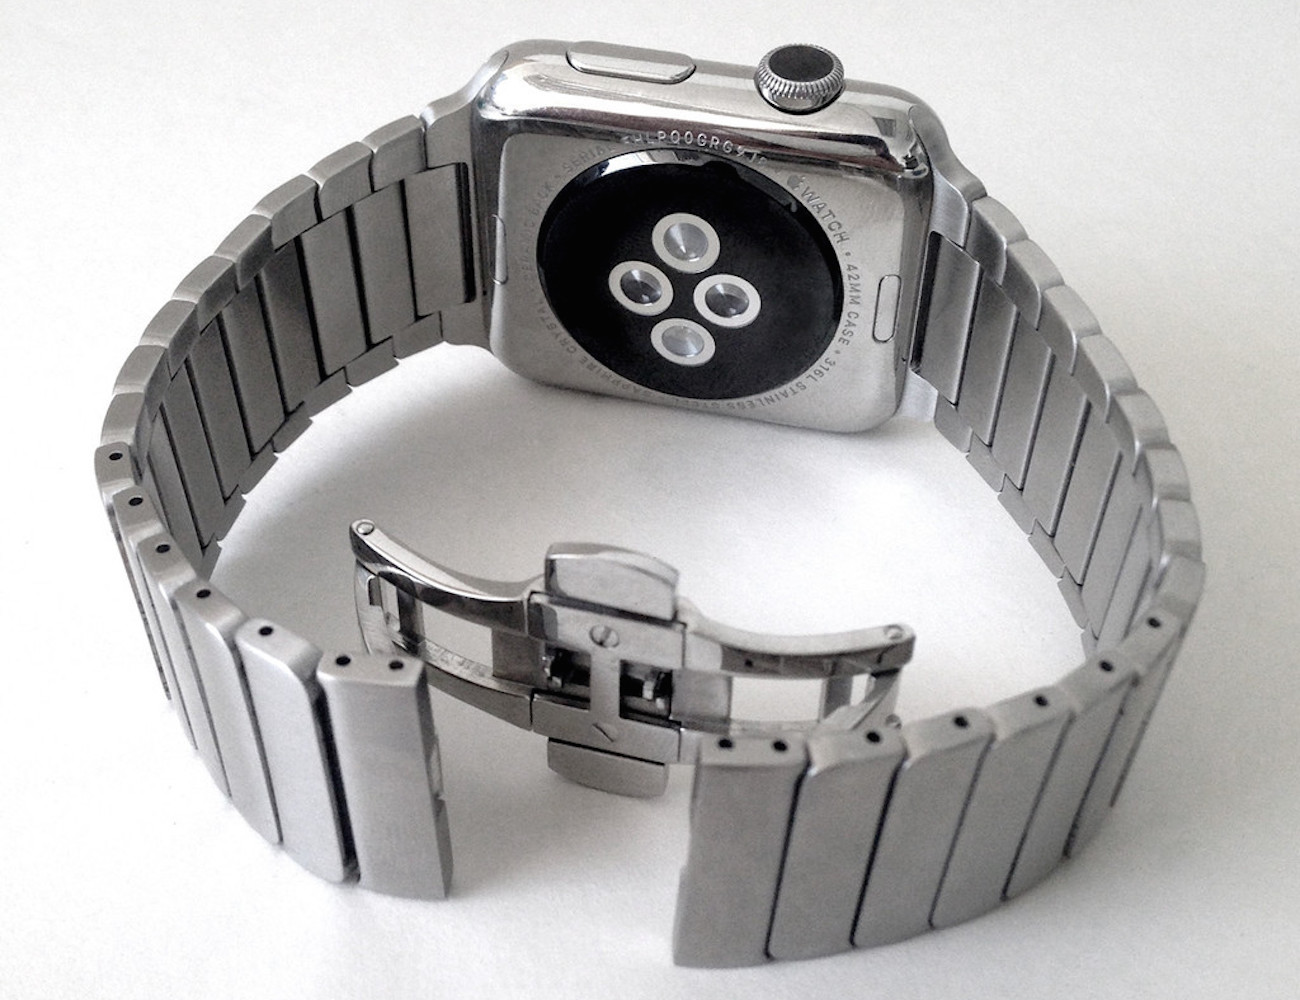 link-bracelet-stainless-steel-strap-band-03